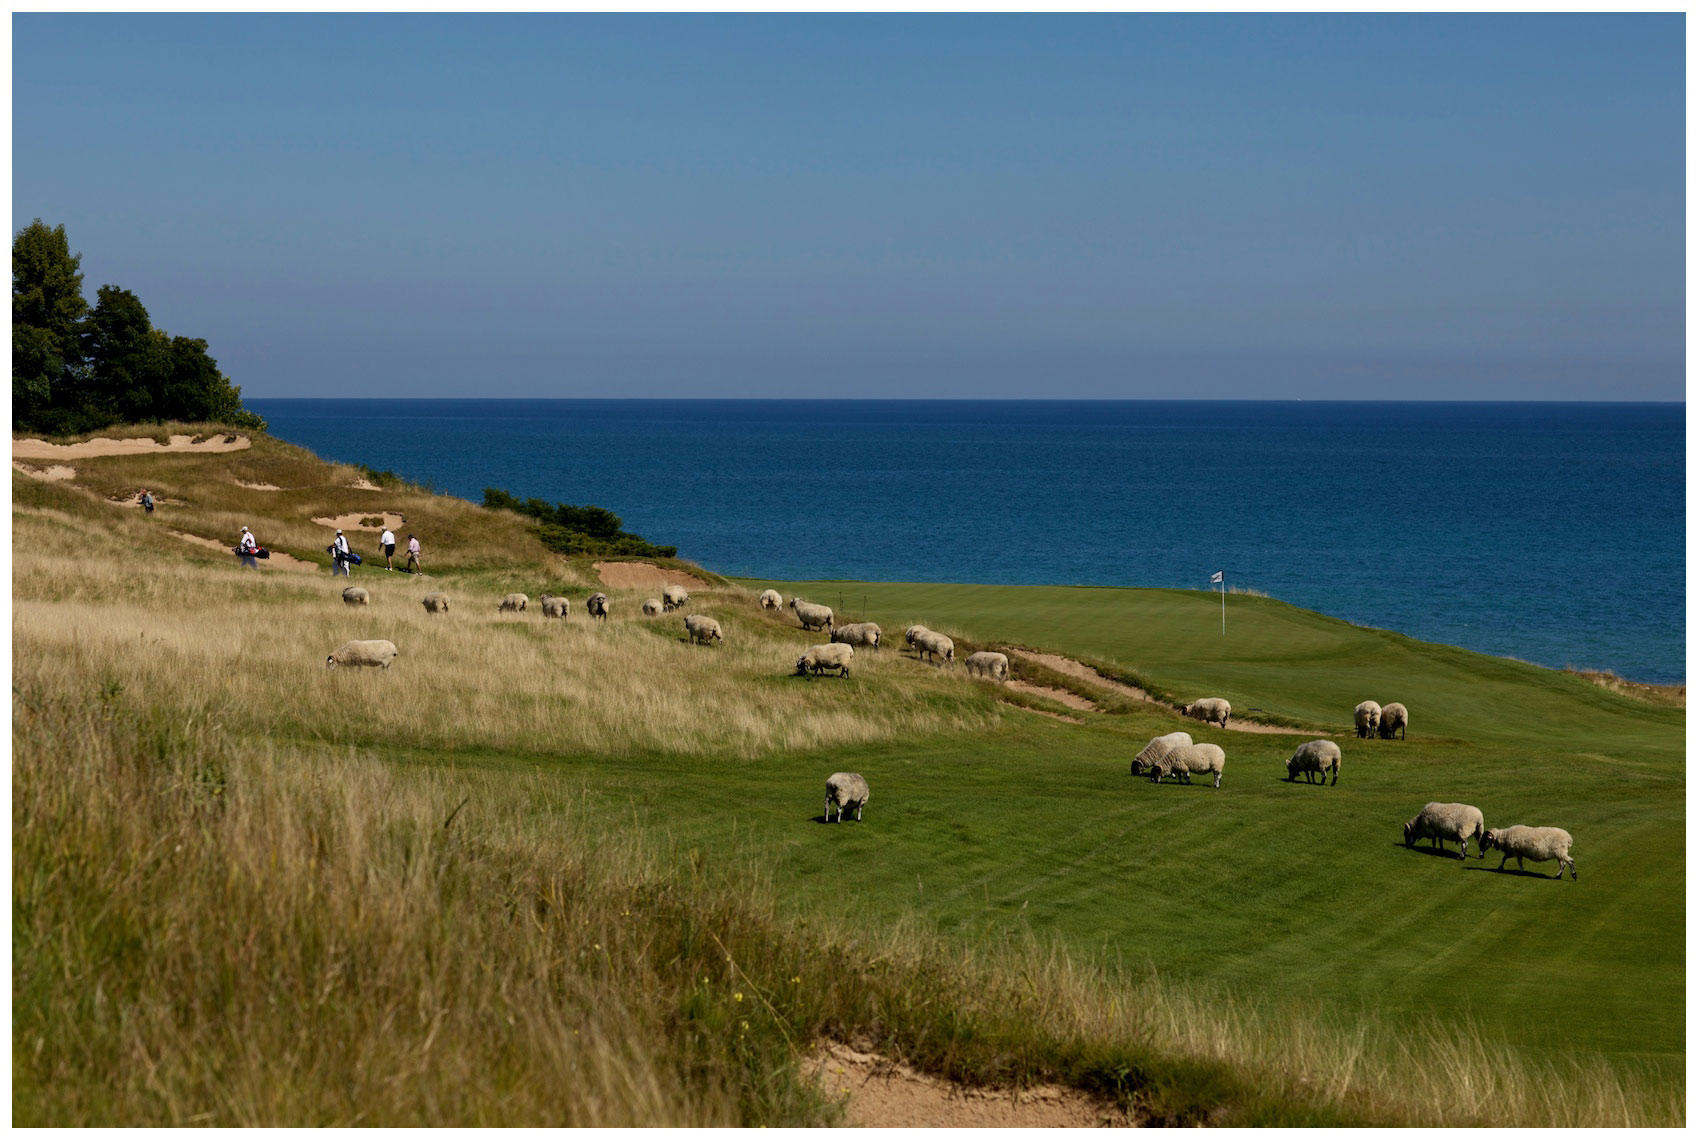 Whistling Straits in Kohler, Wisconsin